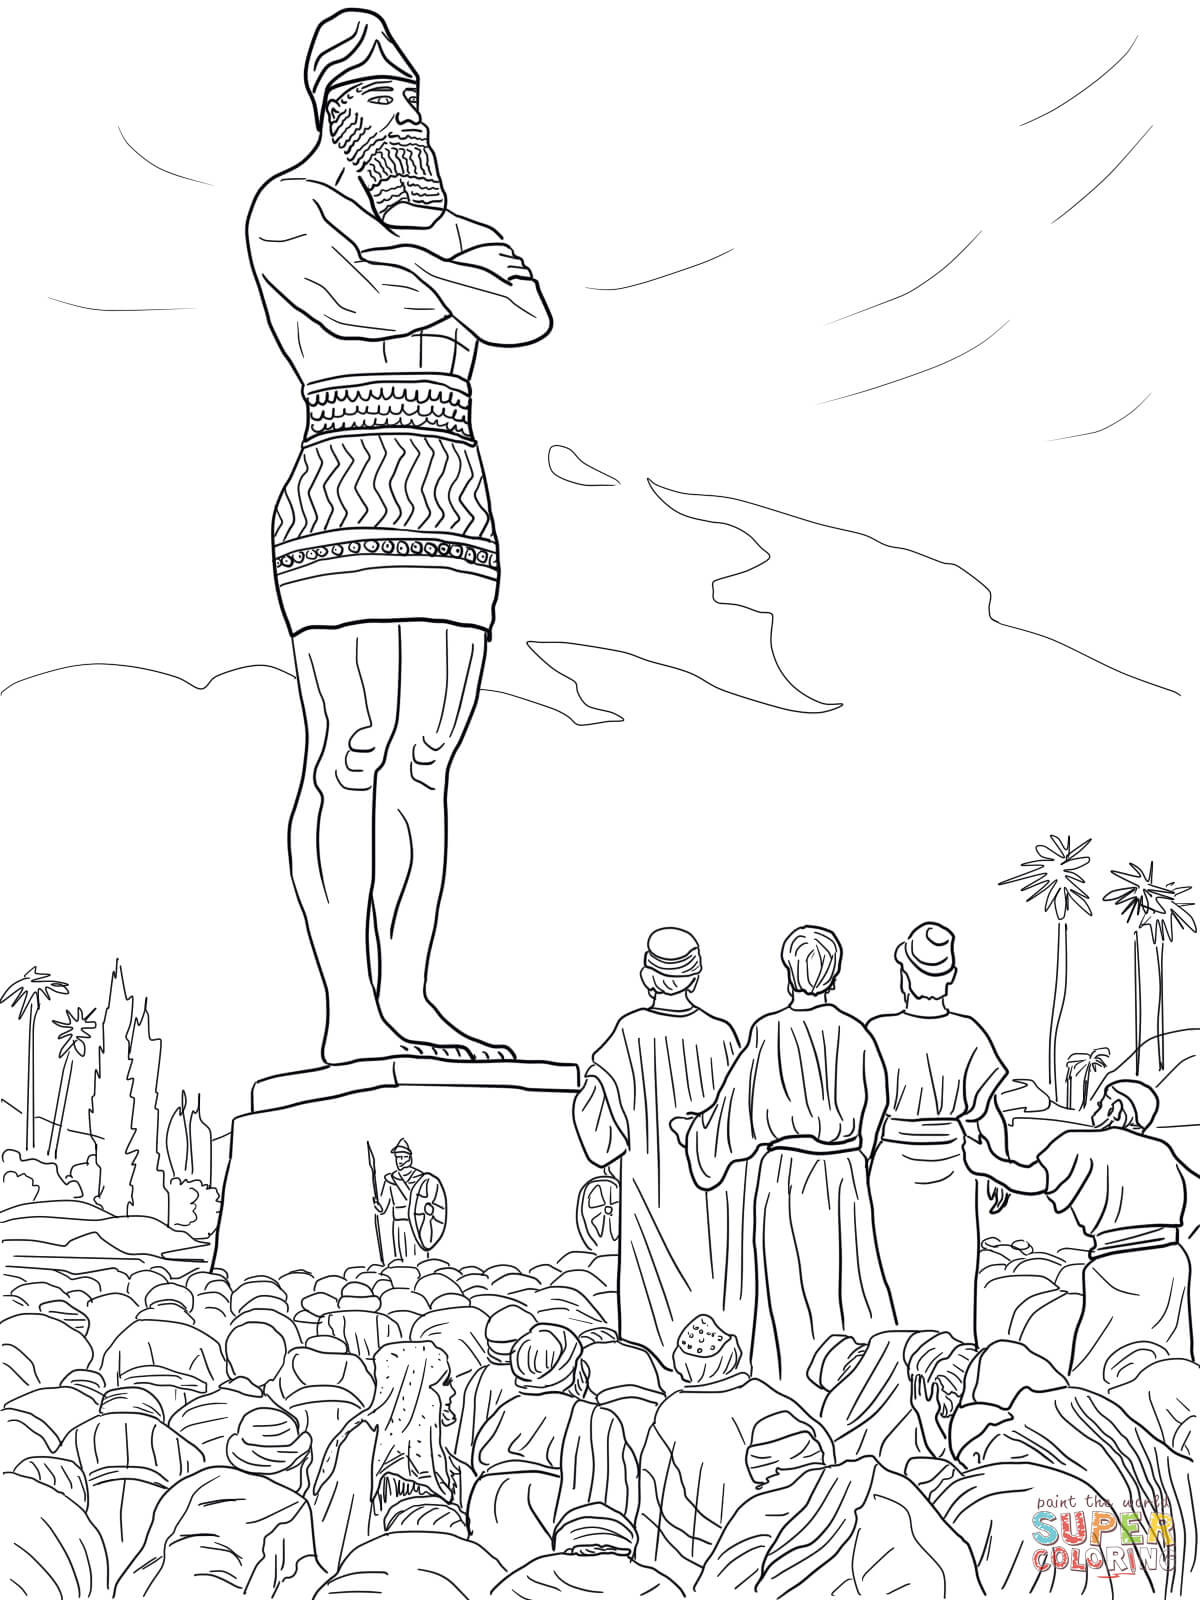 Daniel's Friends Refused to Worship the Statue coloring page | Free  Printable Coloring Pages